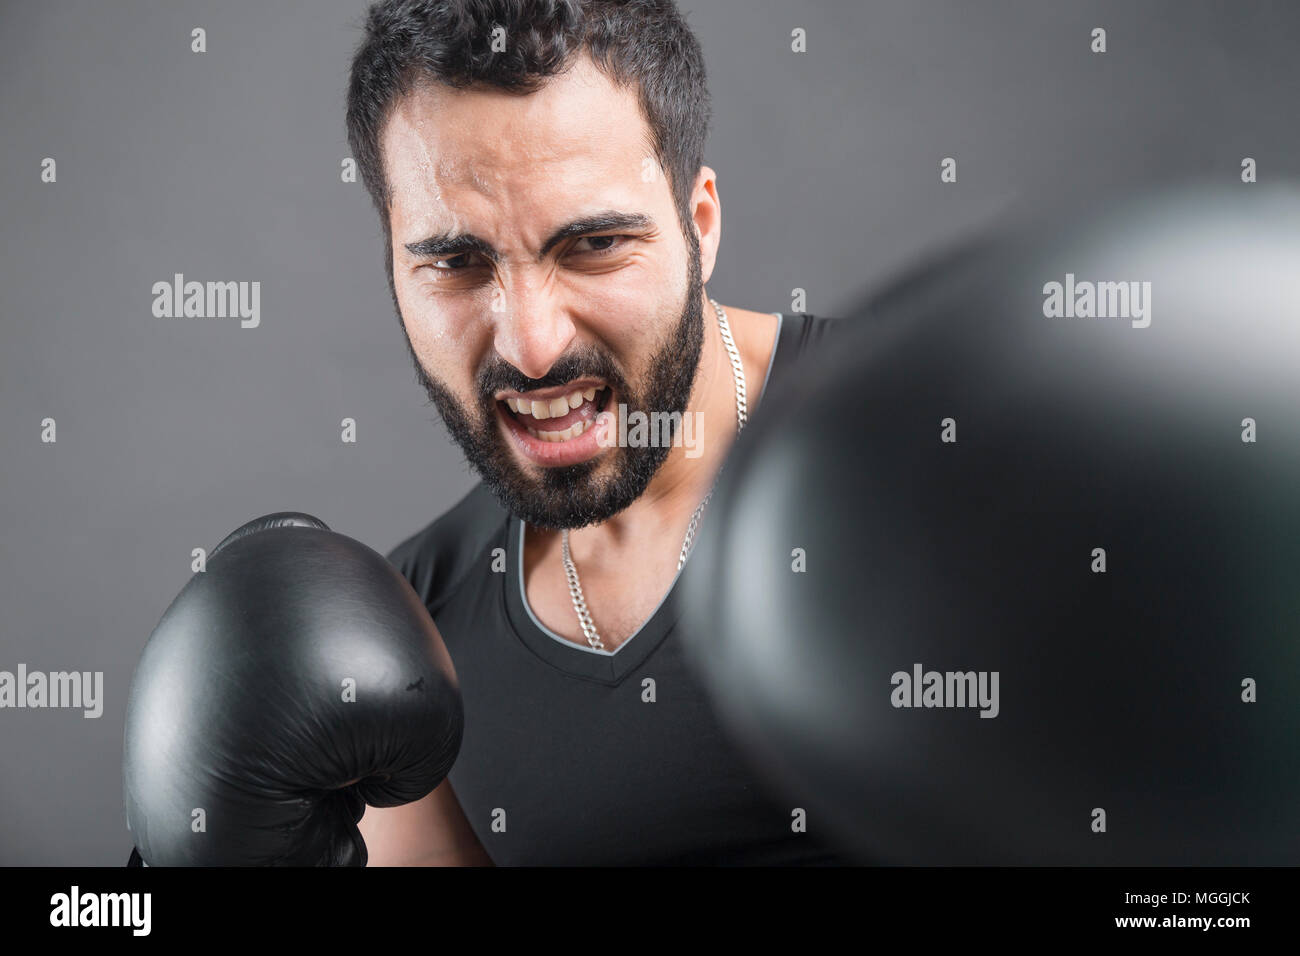 The Angry Boxer - Stock Image